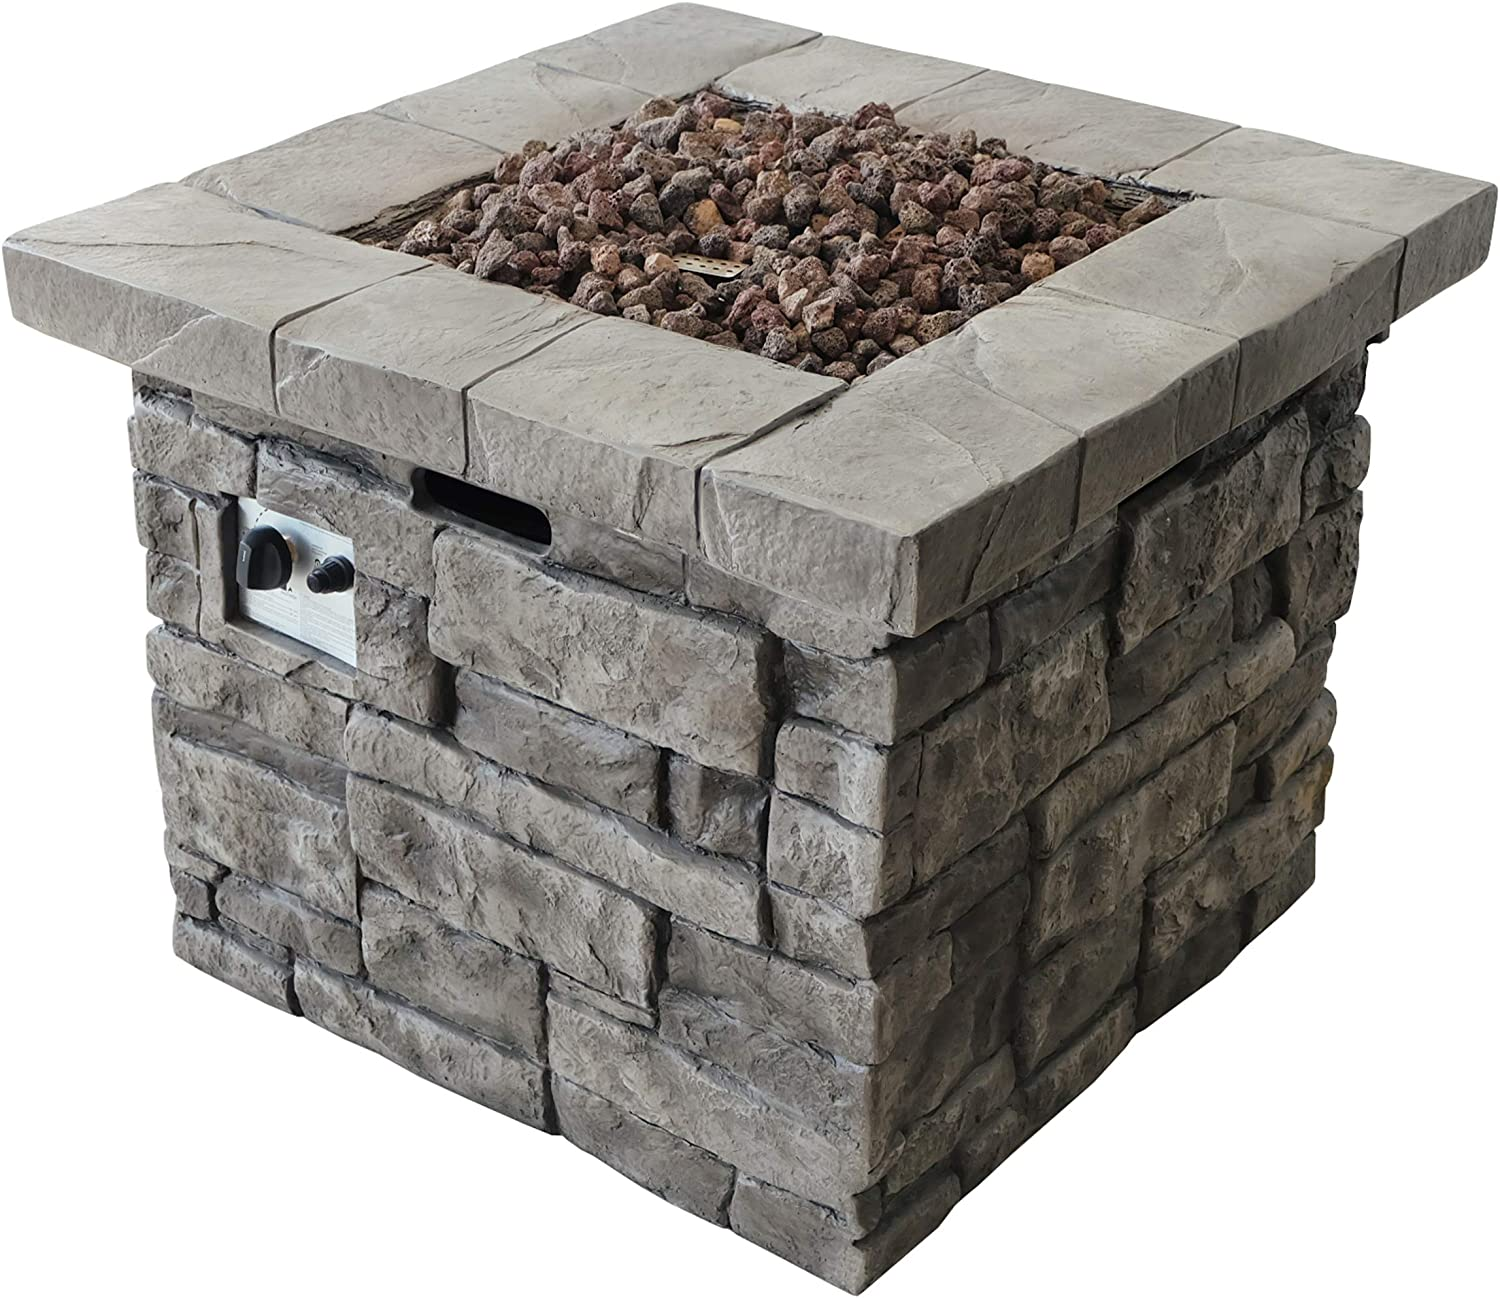 Christopher Knight Home Angeles Super Special SALE held Outdoor Square - 000 Pit 40 service Fire